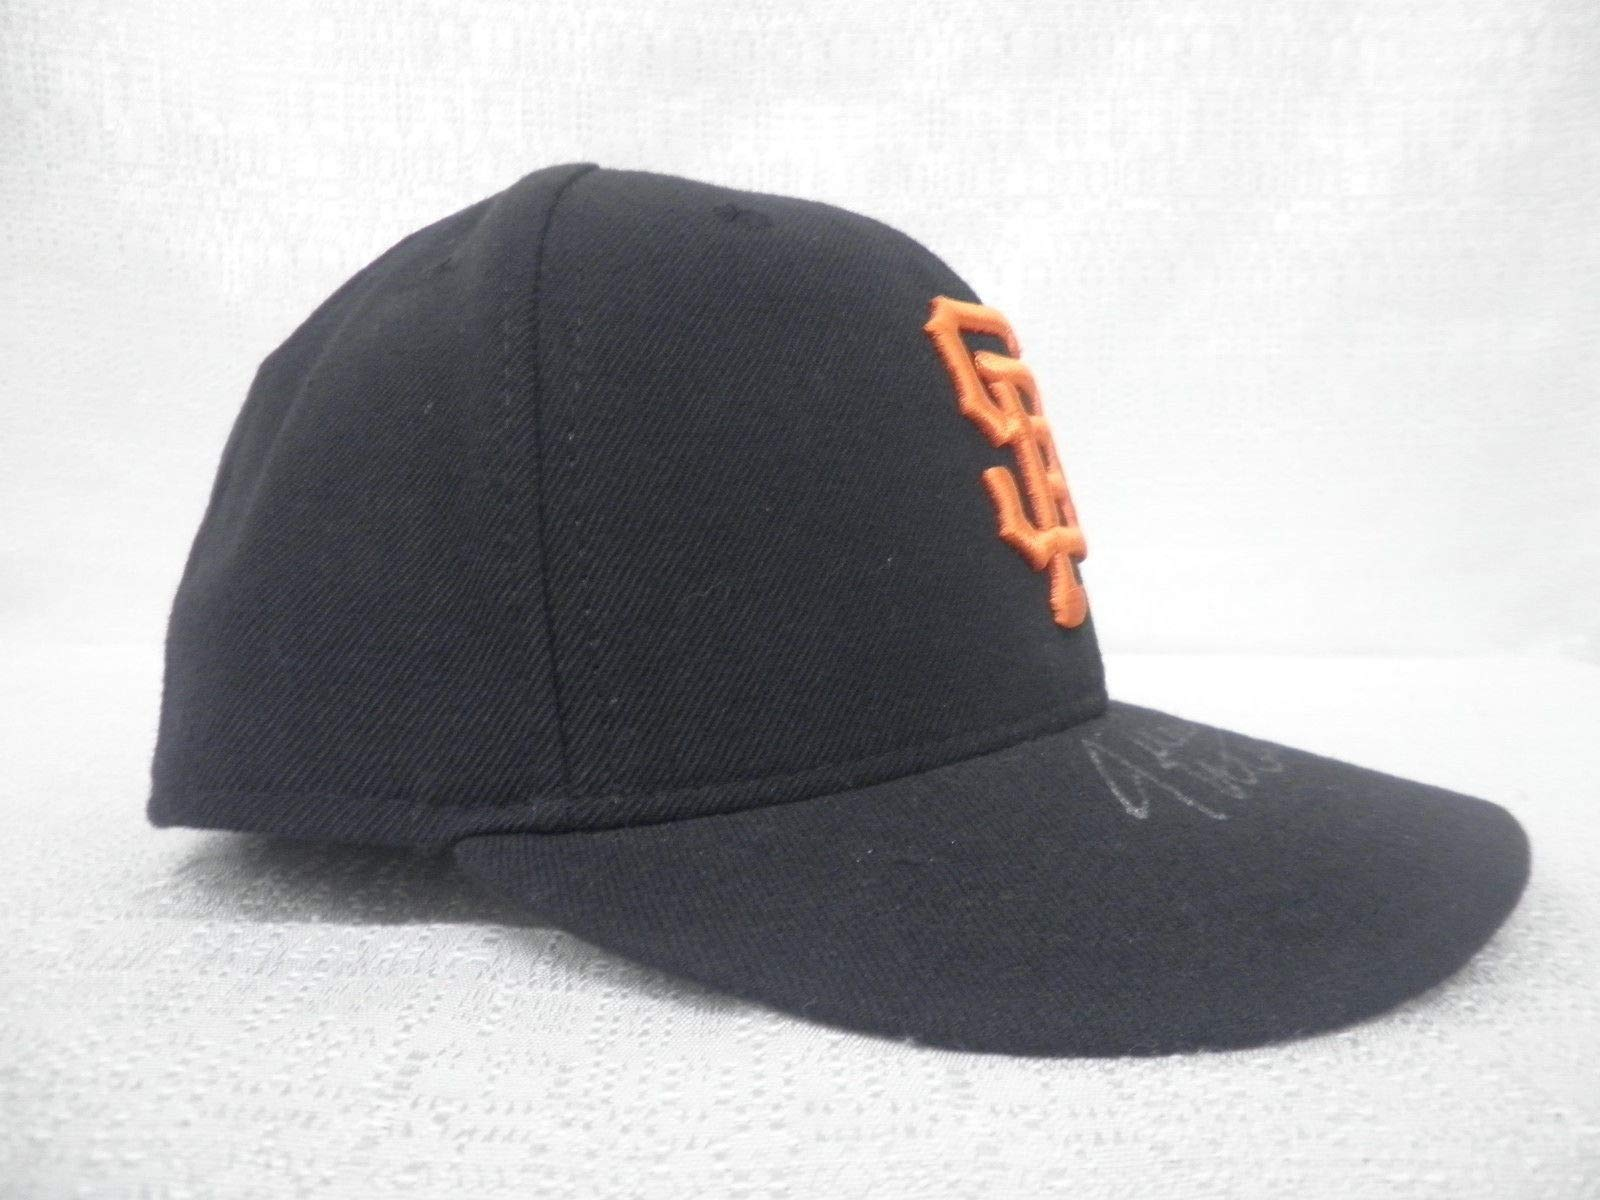 Juan Marichal Autographed Signed San Francisco Giants New Era 59/50 7 1/4 Cap Hat JSA Authentic